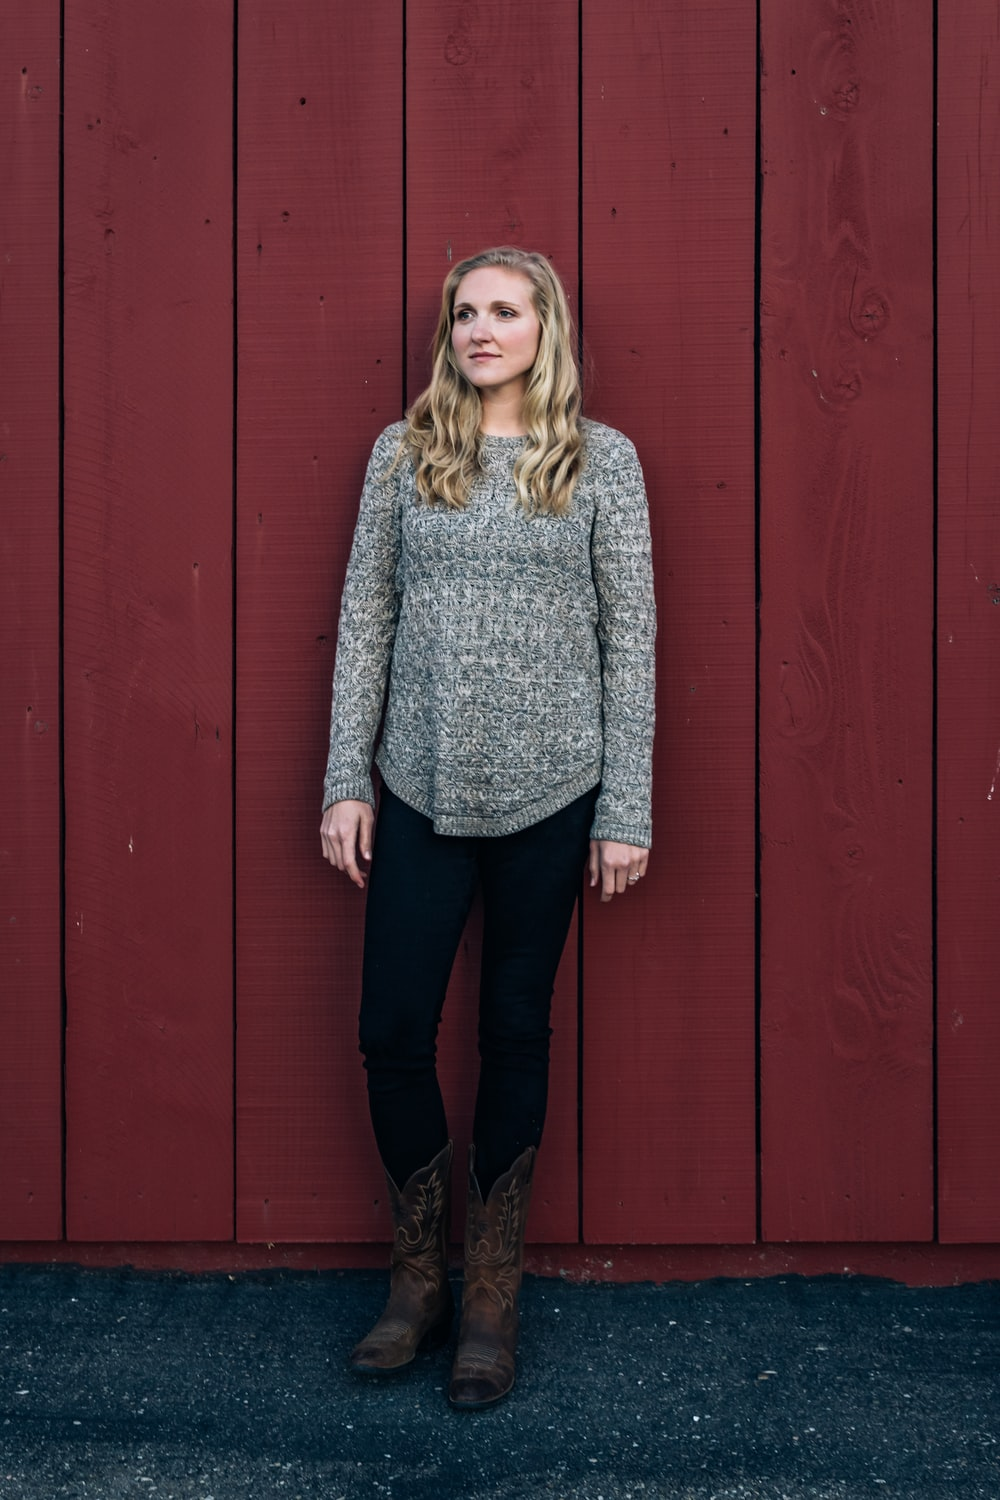 woman in gray sweater standing beside red wooden wall